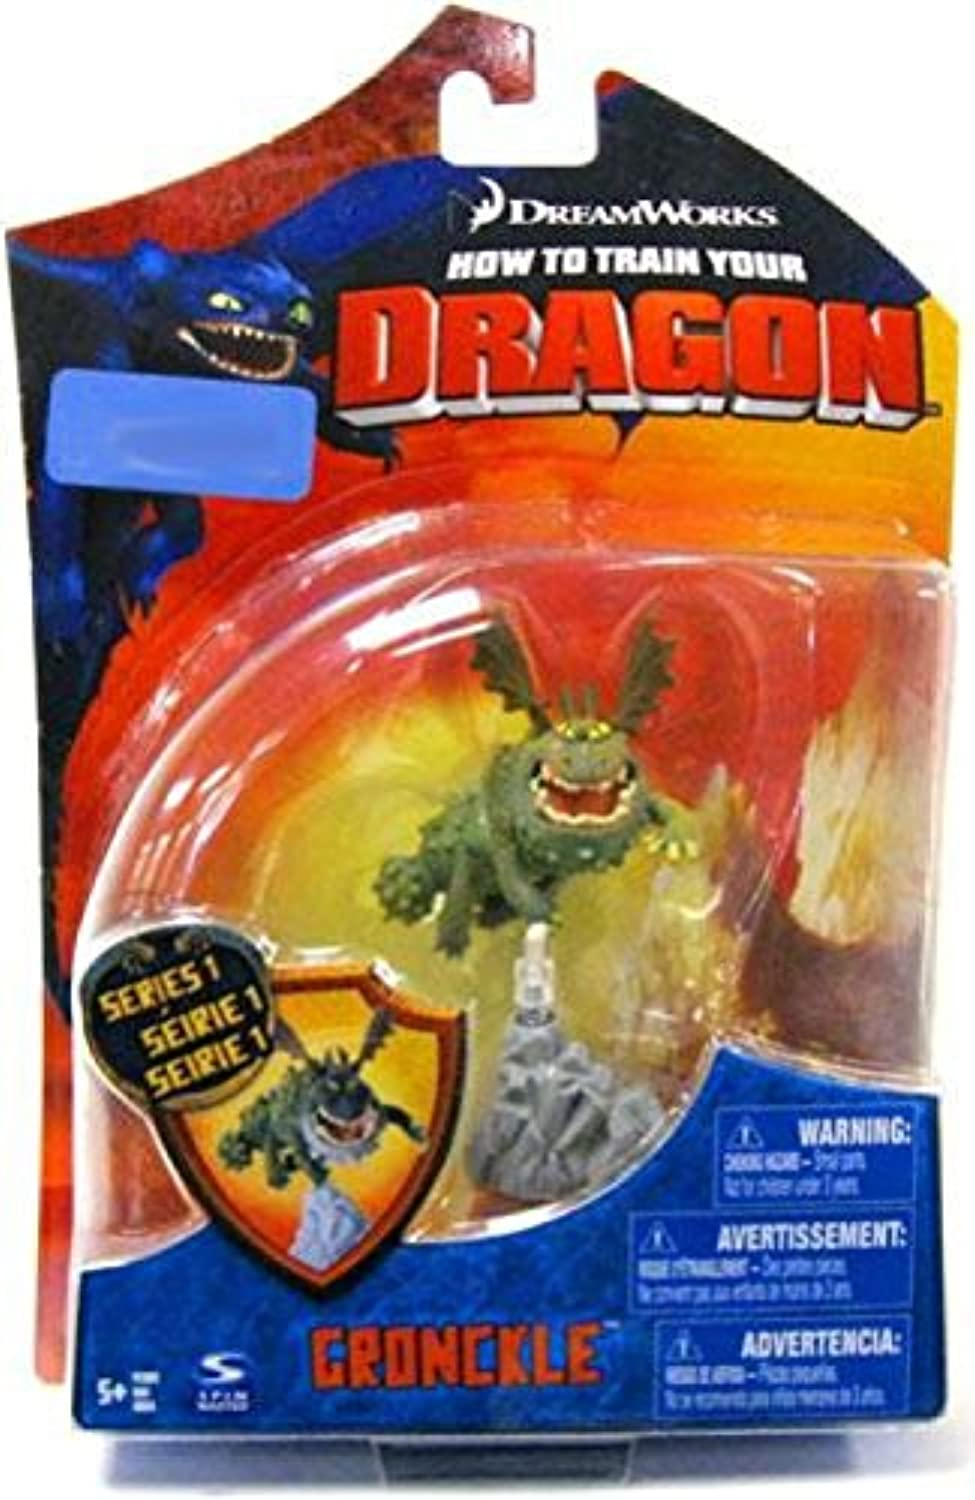 Dreamworks Movie Series  How To Train Your Dragon  Exclusive 4 Inch Tall Figure - Gronckle With Rock Shaped Display Base